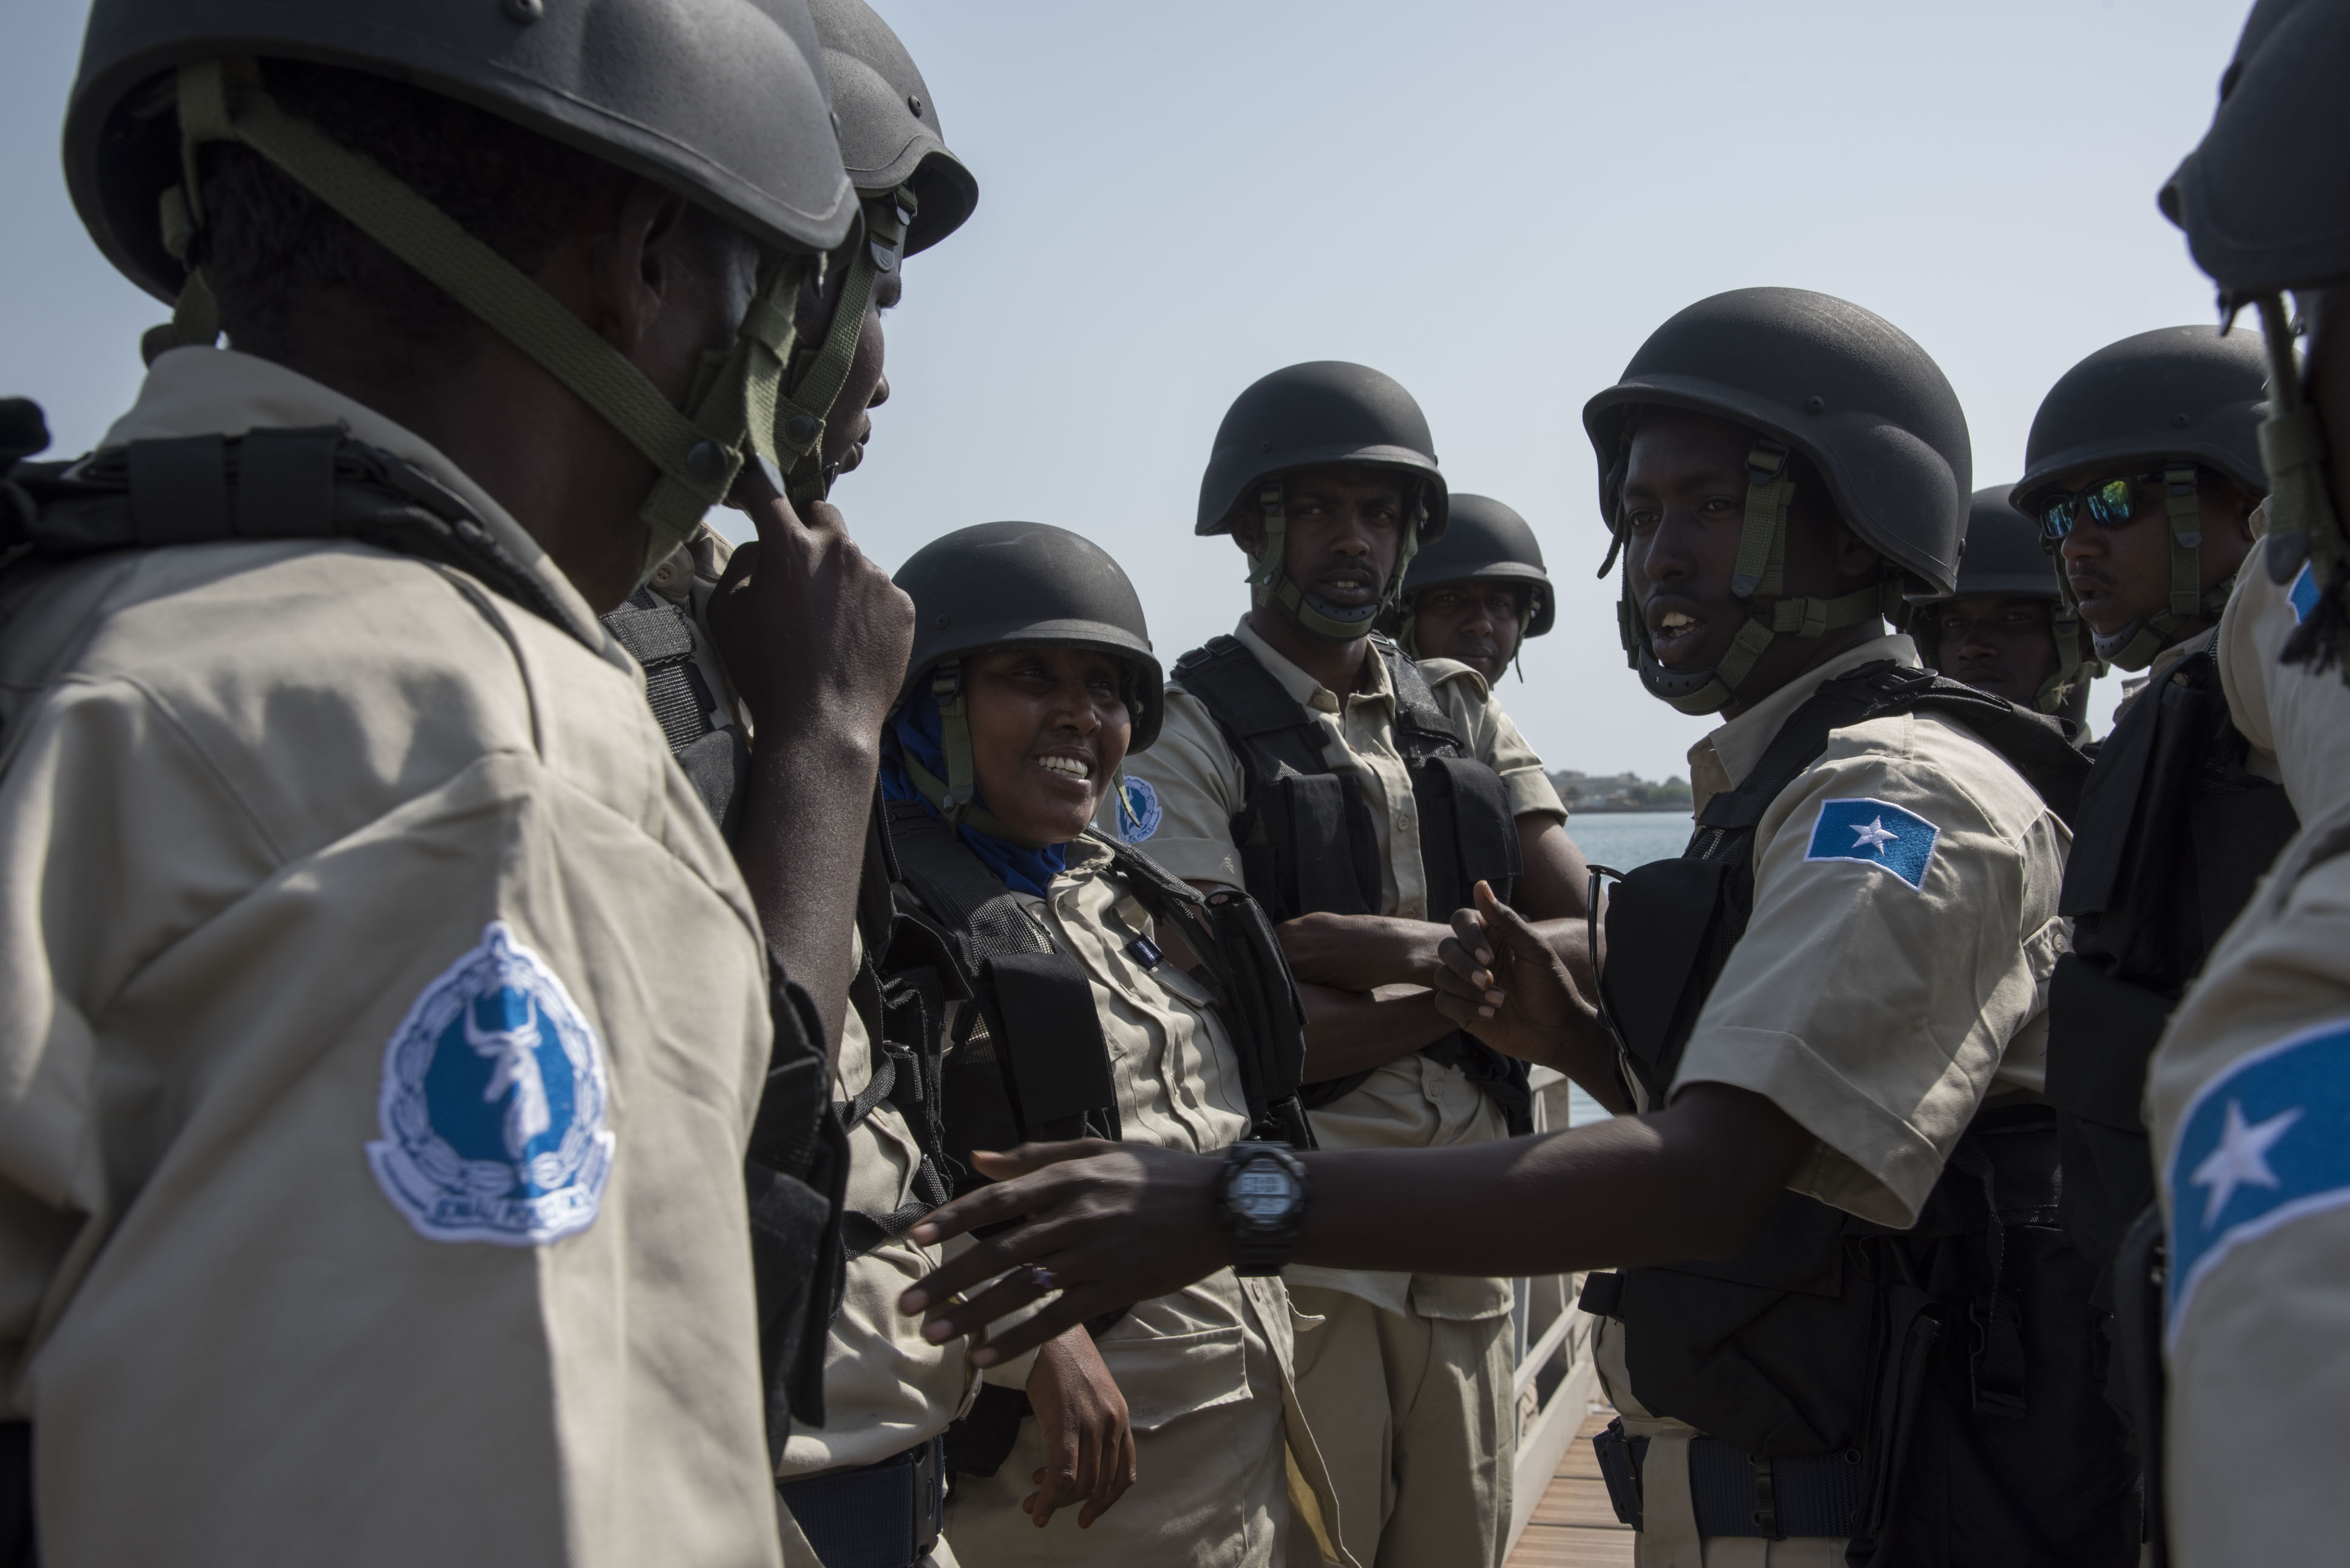 Somali maritime police talk together before running through a visit, board, search and seizure drill (VBSS) during exercise Cutlass Express 2018 in the Port of Djibouti Feb. 5, 2018. Cutlass Express is designed to improve cooperation, maritime domain awareness and information sharing practices to increase capabilities between the U.S., East African and Western Indian Ocean nations. (U.S. Air National Guard photo by Staff Sgt. Allyson Manners)